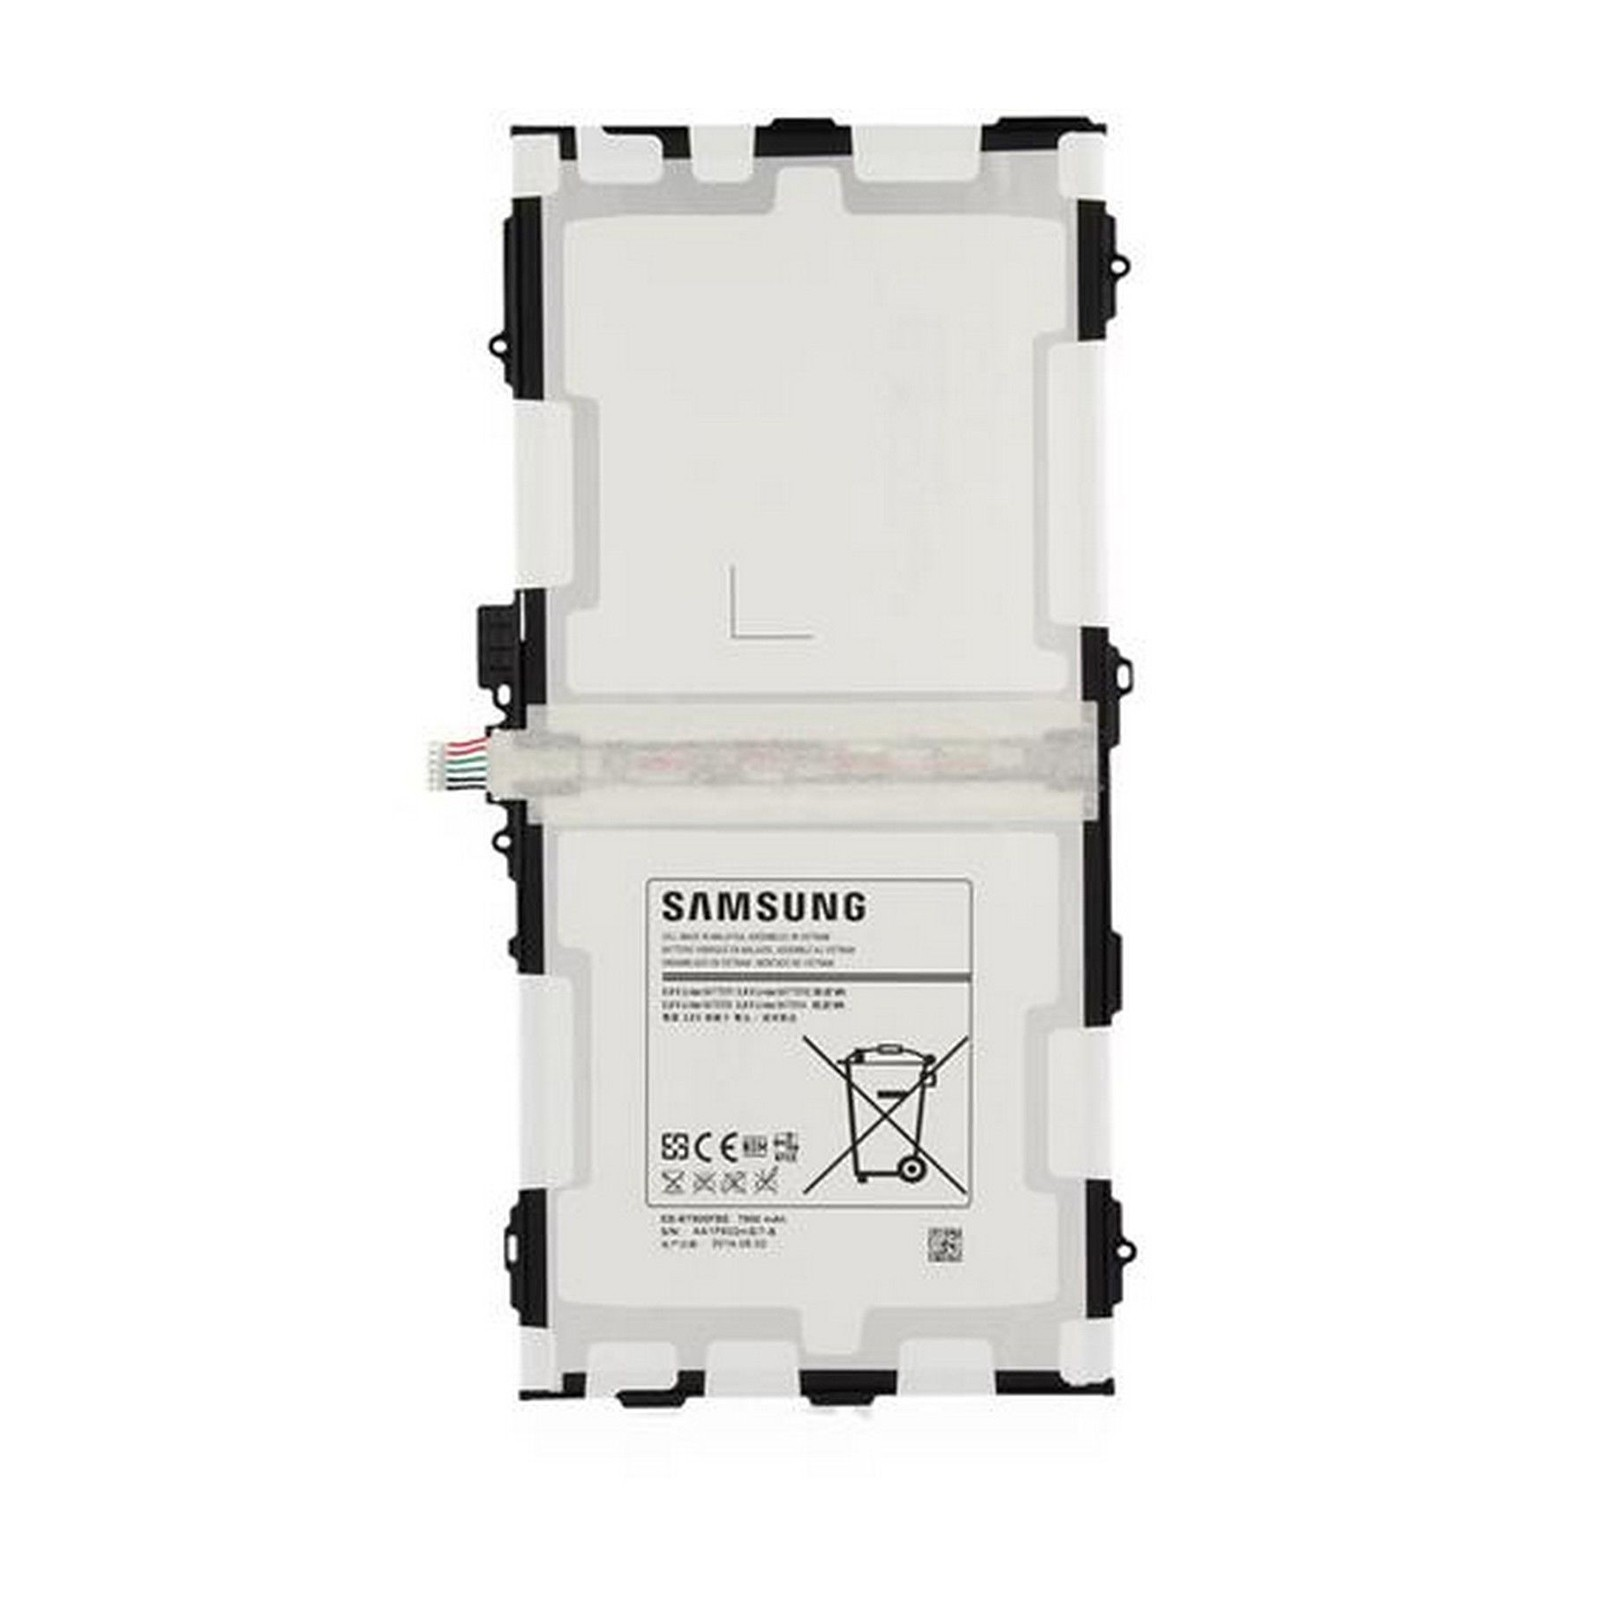 Batteria EB-BT800FBE Per Samsung Galaxy Tab S 10.5 SM-T800 T805+kit 9 in 1 biadesivo e colla b7000